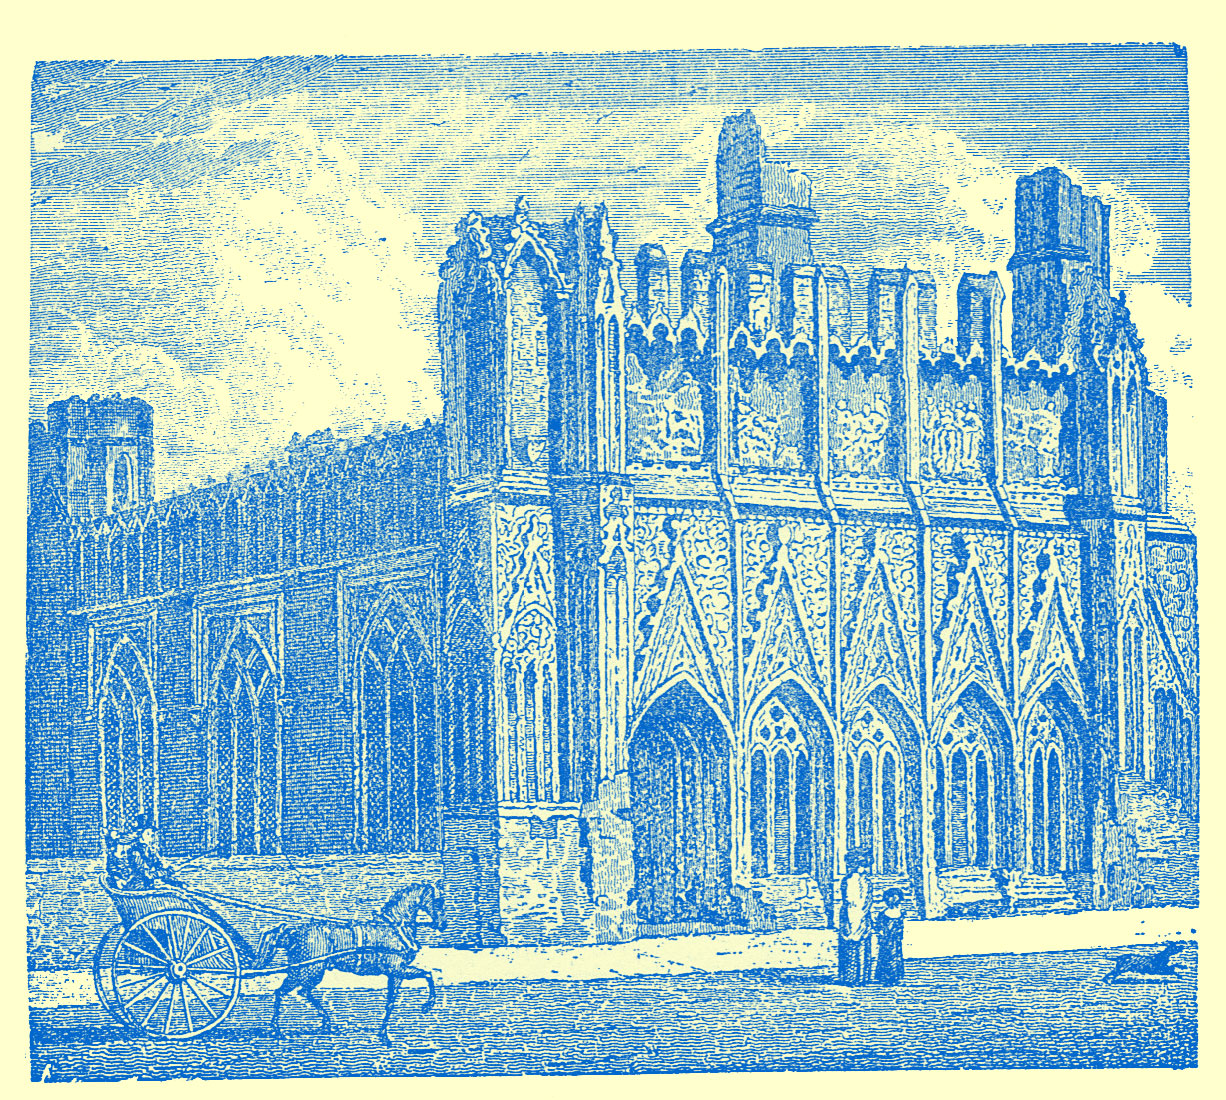 Engraving of a large gothic building, rectangular in shape, with arched doorways.  A man in a buggy is pulled by a horse, and a lady and child are on the lawn looking at it.  A small blakc dog is seen running away to the right by them.